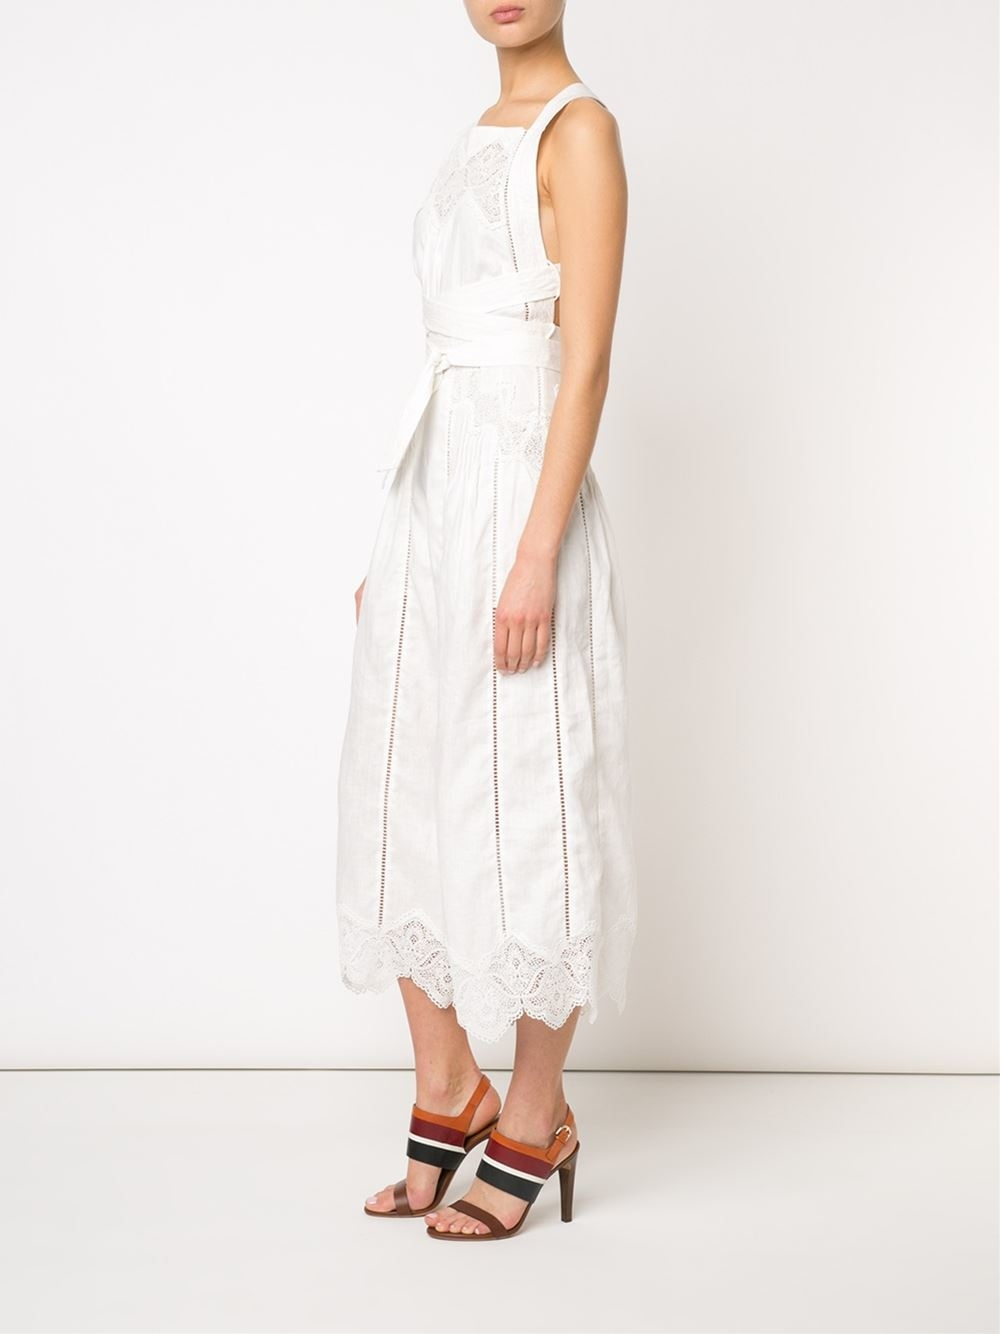 583077a8436 Zimmermann  empire Virtue  Jumpsuit in White - Lyst